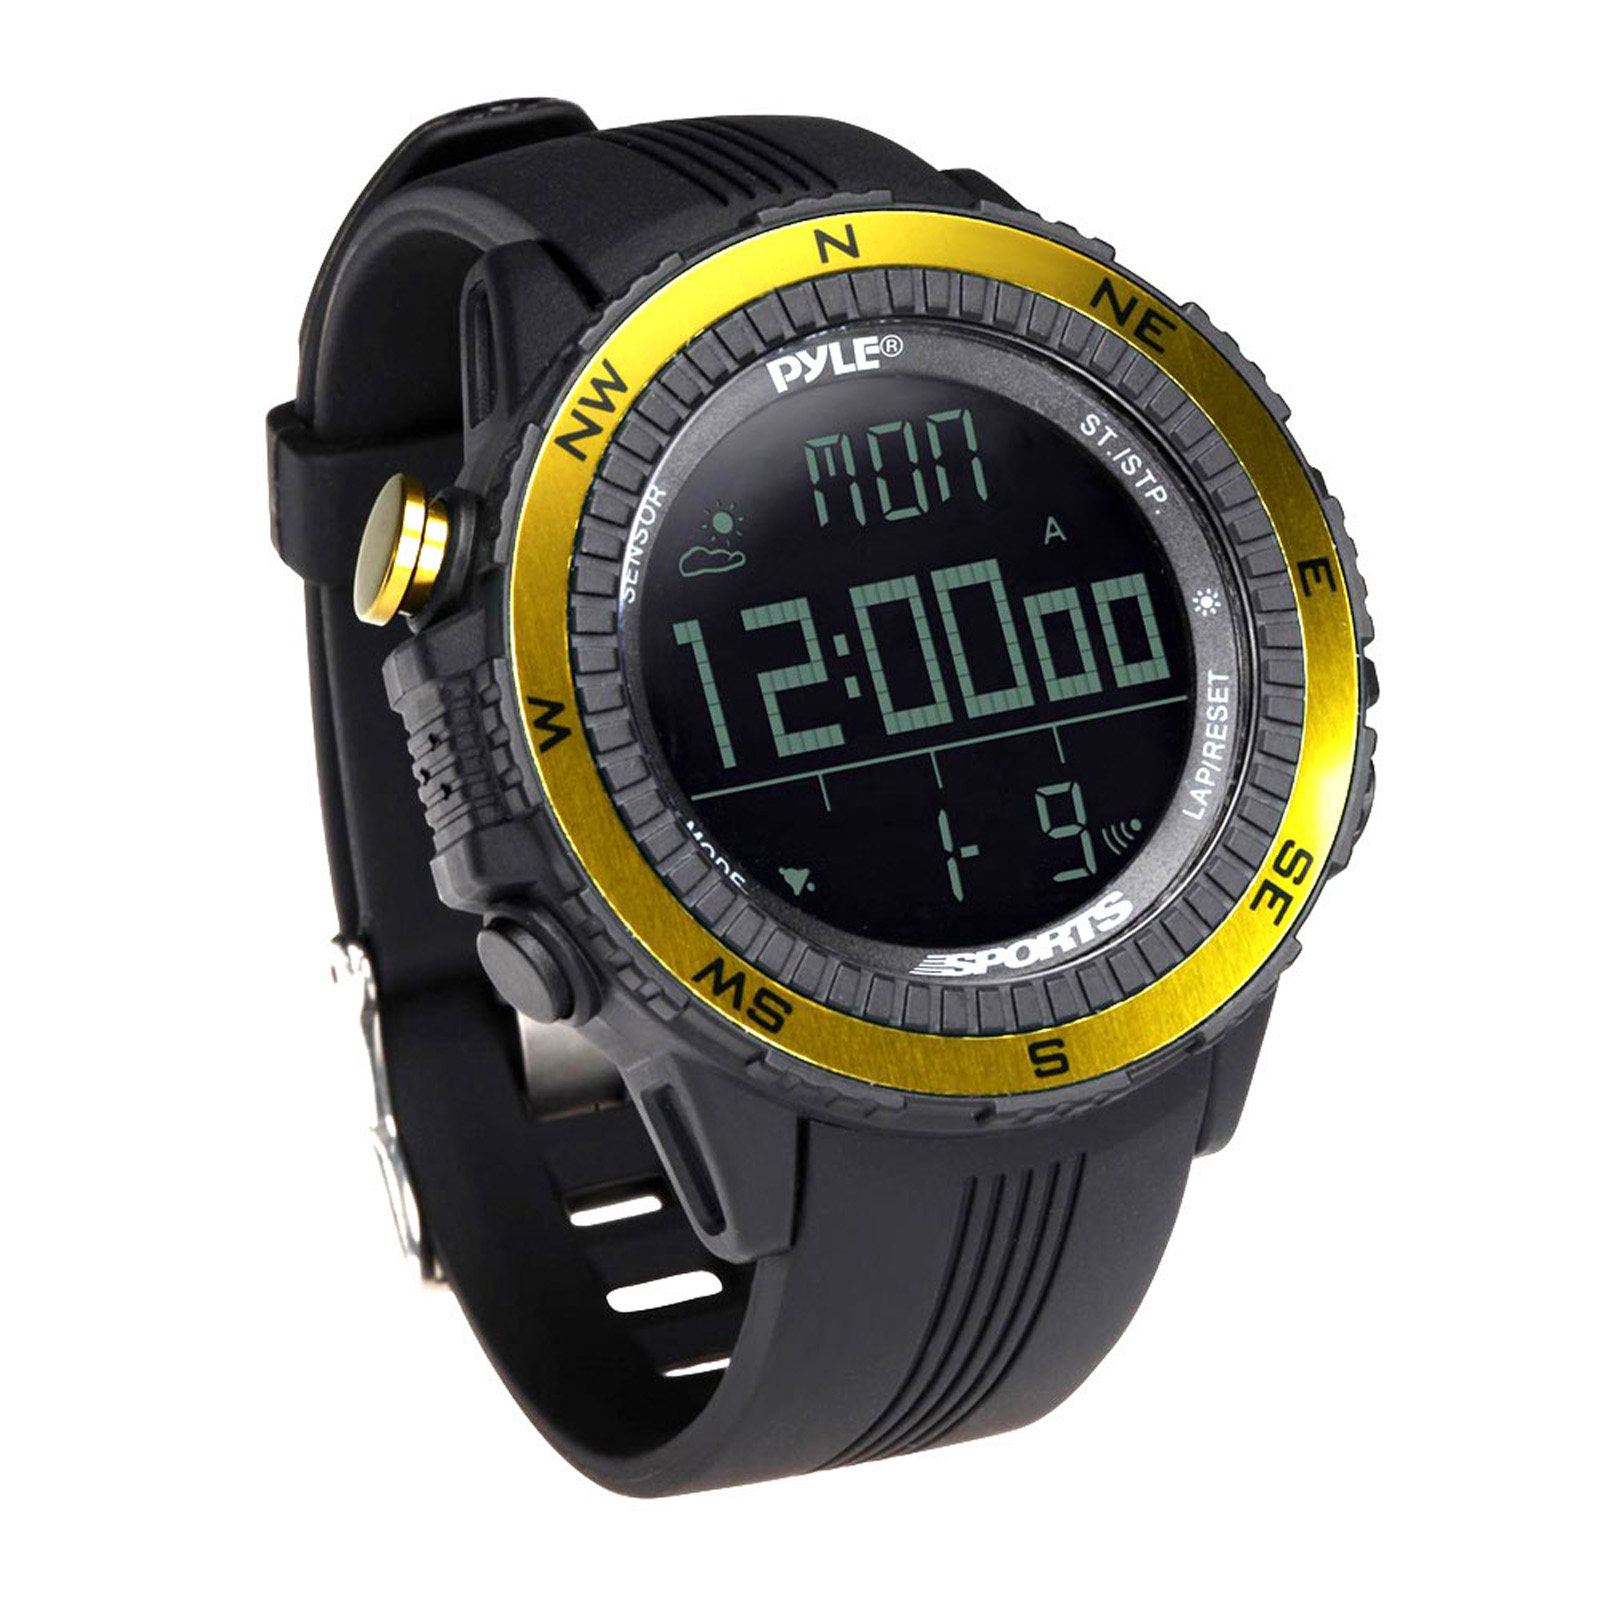 Pyle Multifunct Active Sports Watch with Altimeter, Barometer, Chronograph, Compass, Count-Down Timer, Measuring & Weather Forecast Modes (Yellow)